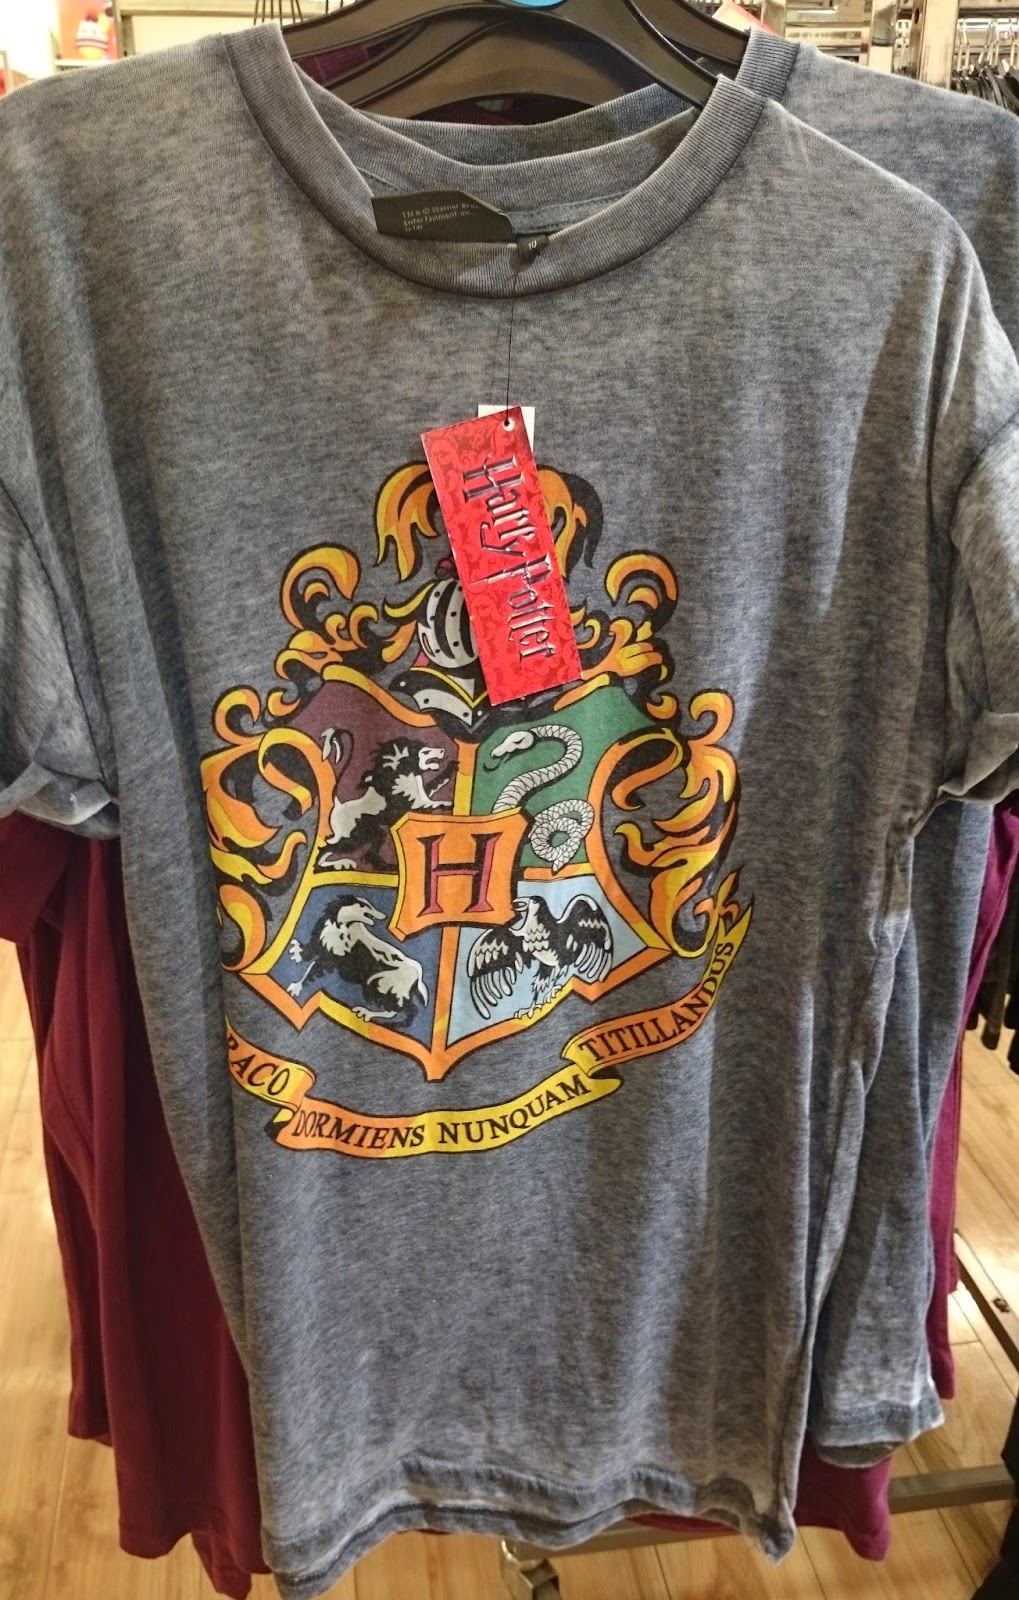 primark wish list harry potter hogwarts jumper tshirt run dmc t shirt